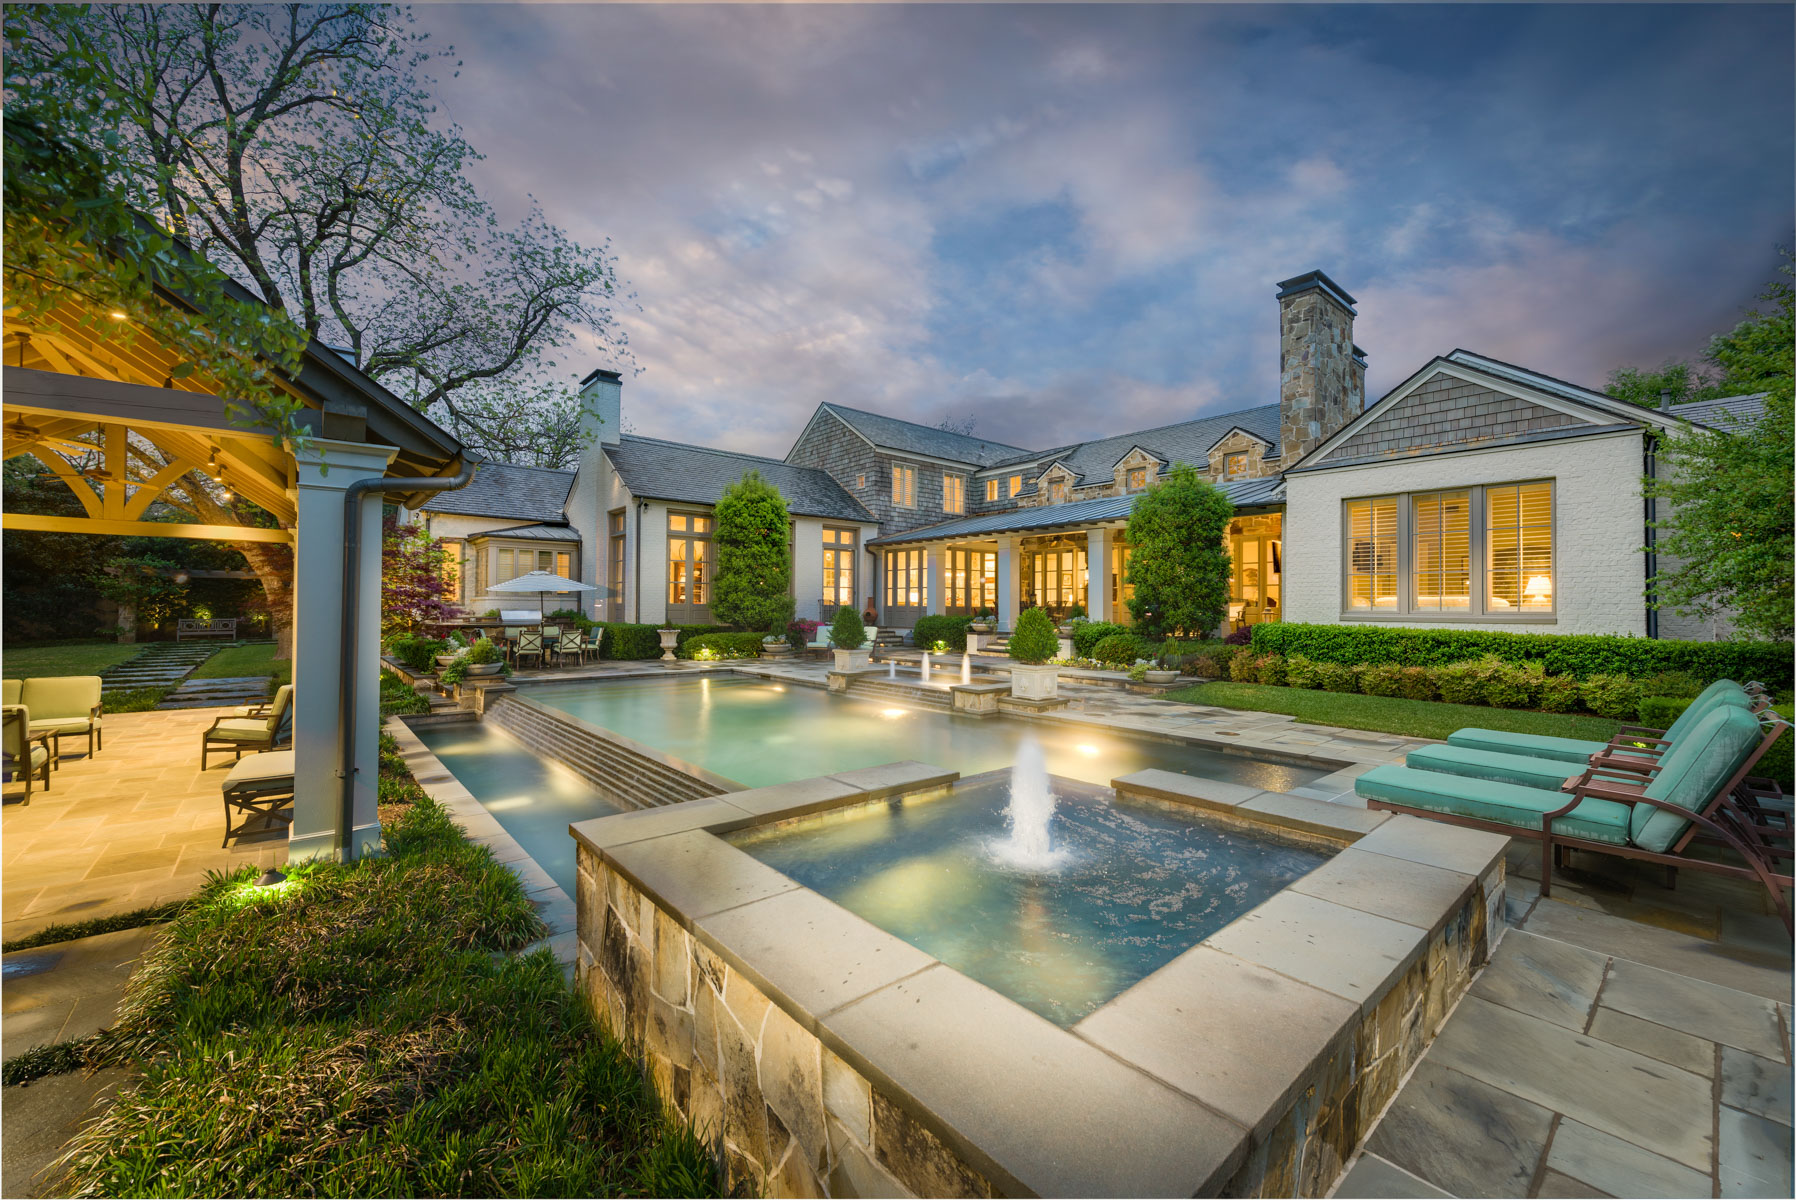 Single Family Home for Sale at Exceptional Preston Hollow Estate 5722 Park Lane Dallas, Texas, 75225 United States